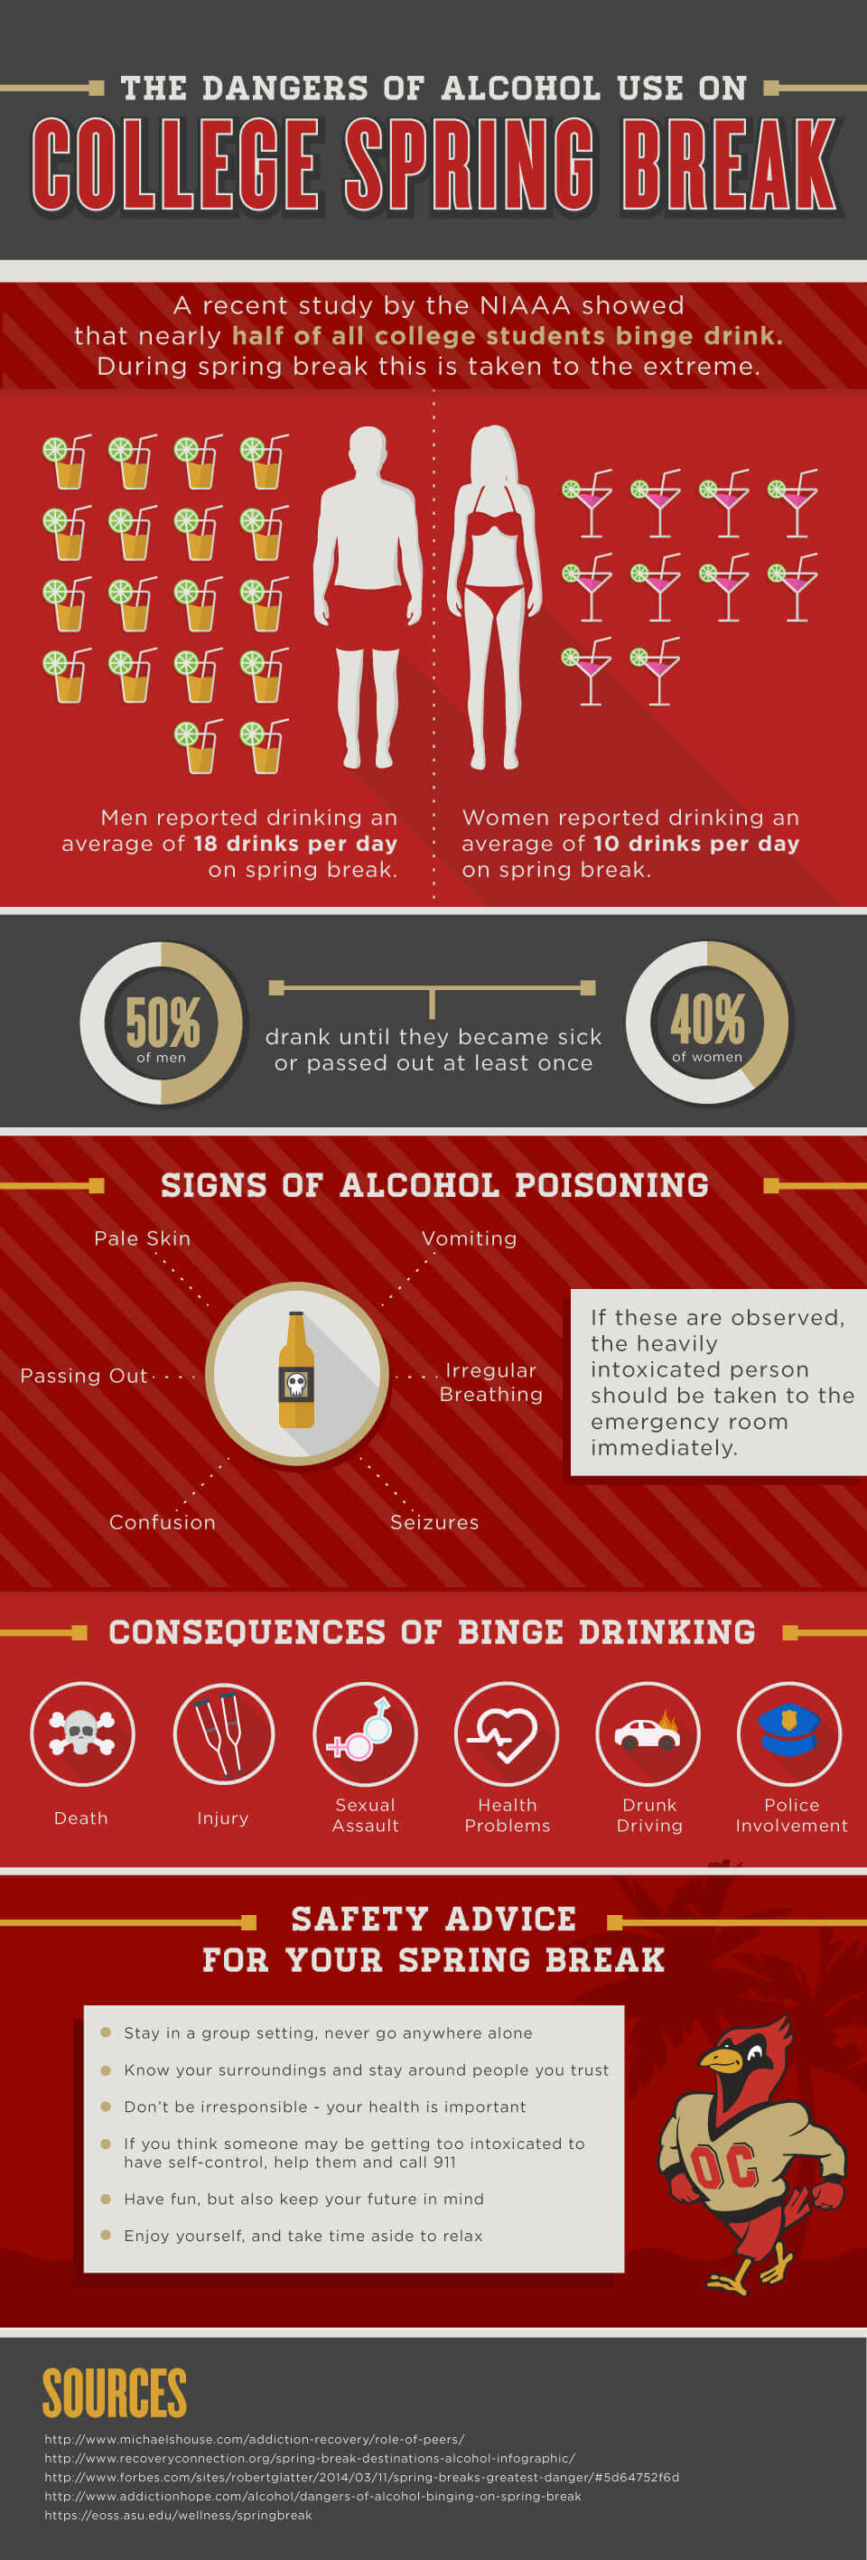 Alcohol-Use-on-College-Spring-Break-